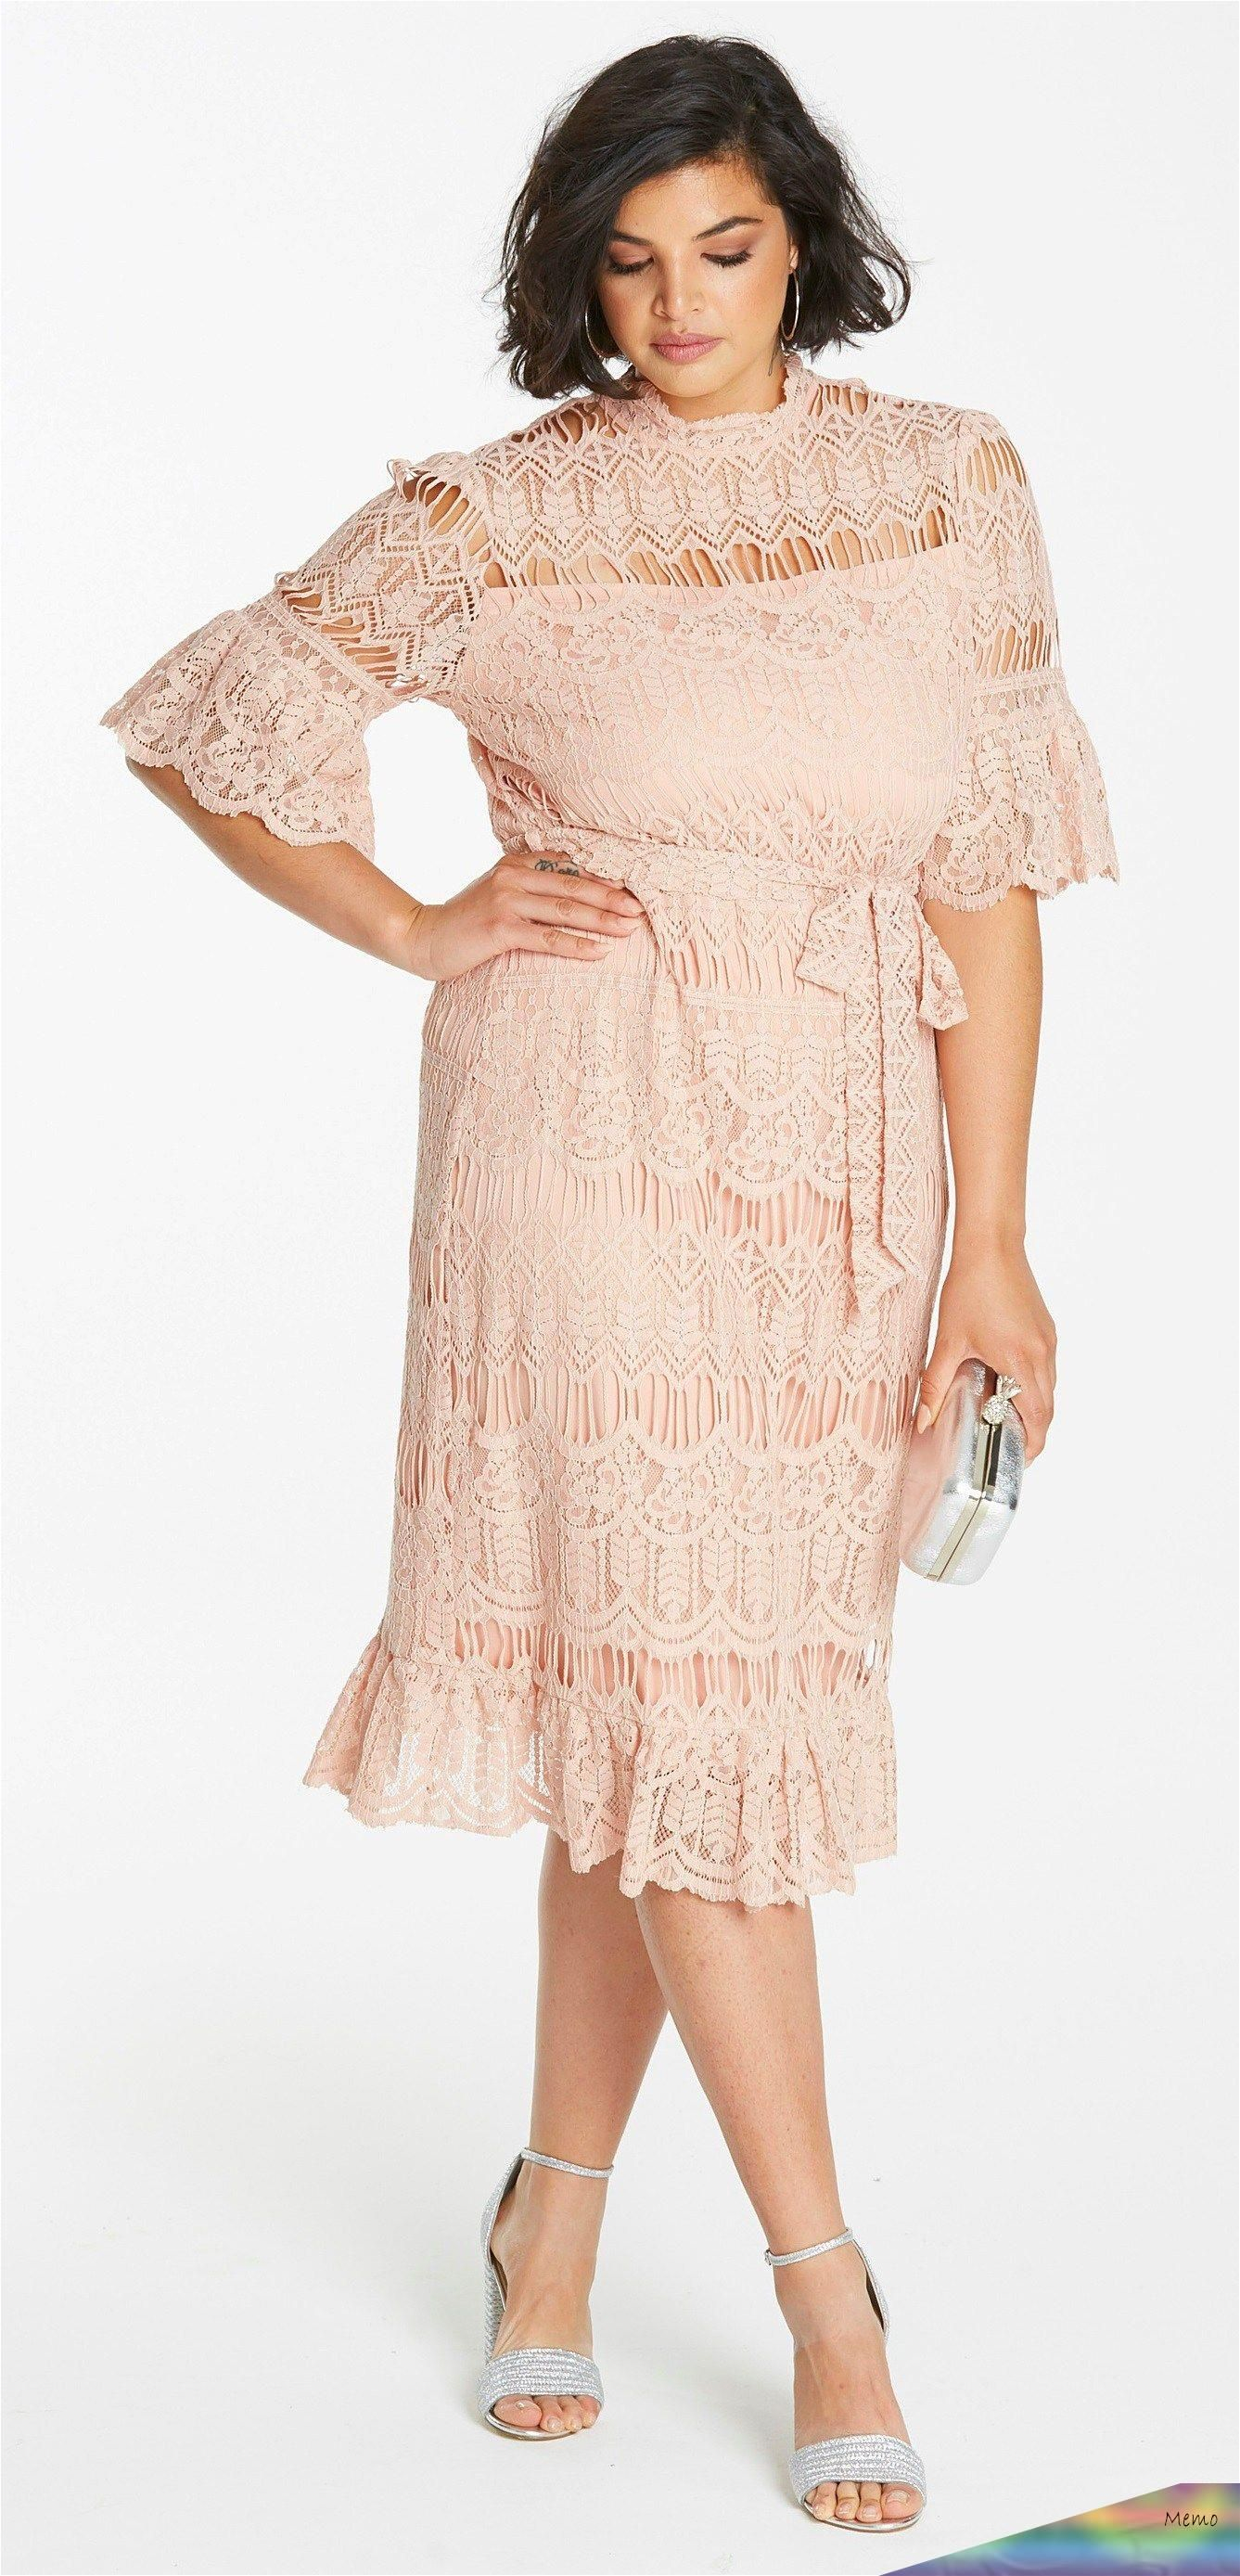 Another Round Up Of Wedding Guest Dresses With Sleeves These Beauties Arena T Frump Plus Size Wedding Guest Dresses Dresses To Wear To A Wedding Classy Dress [ 2777 x 1337 Pixel ]